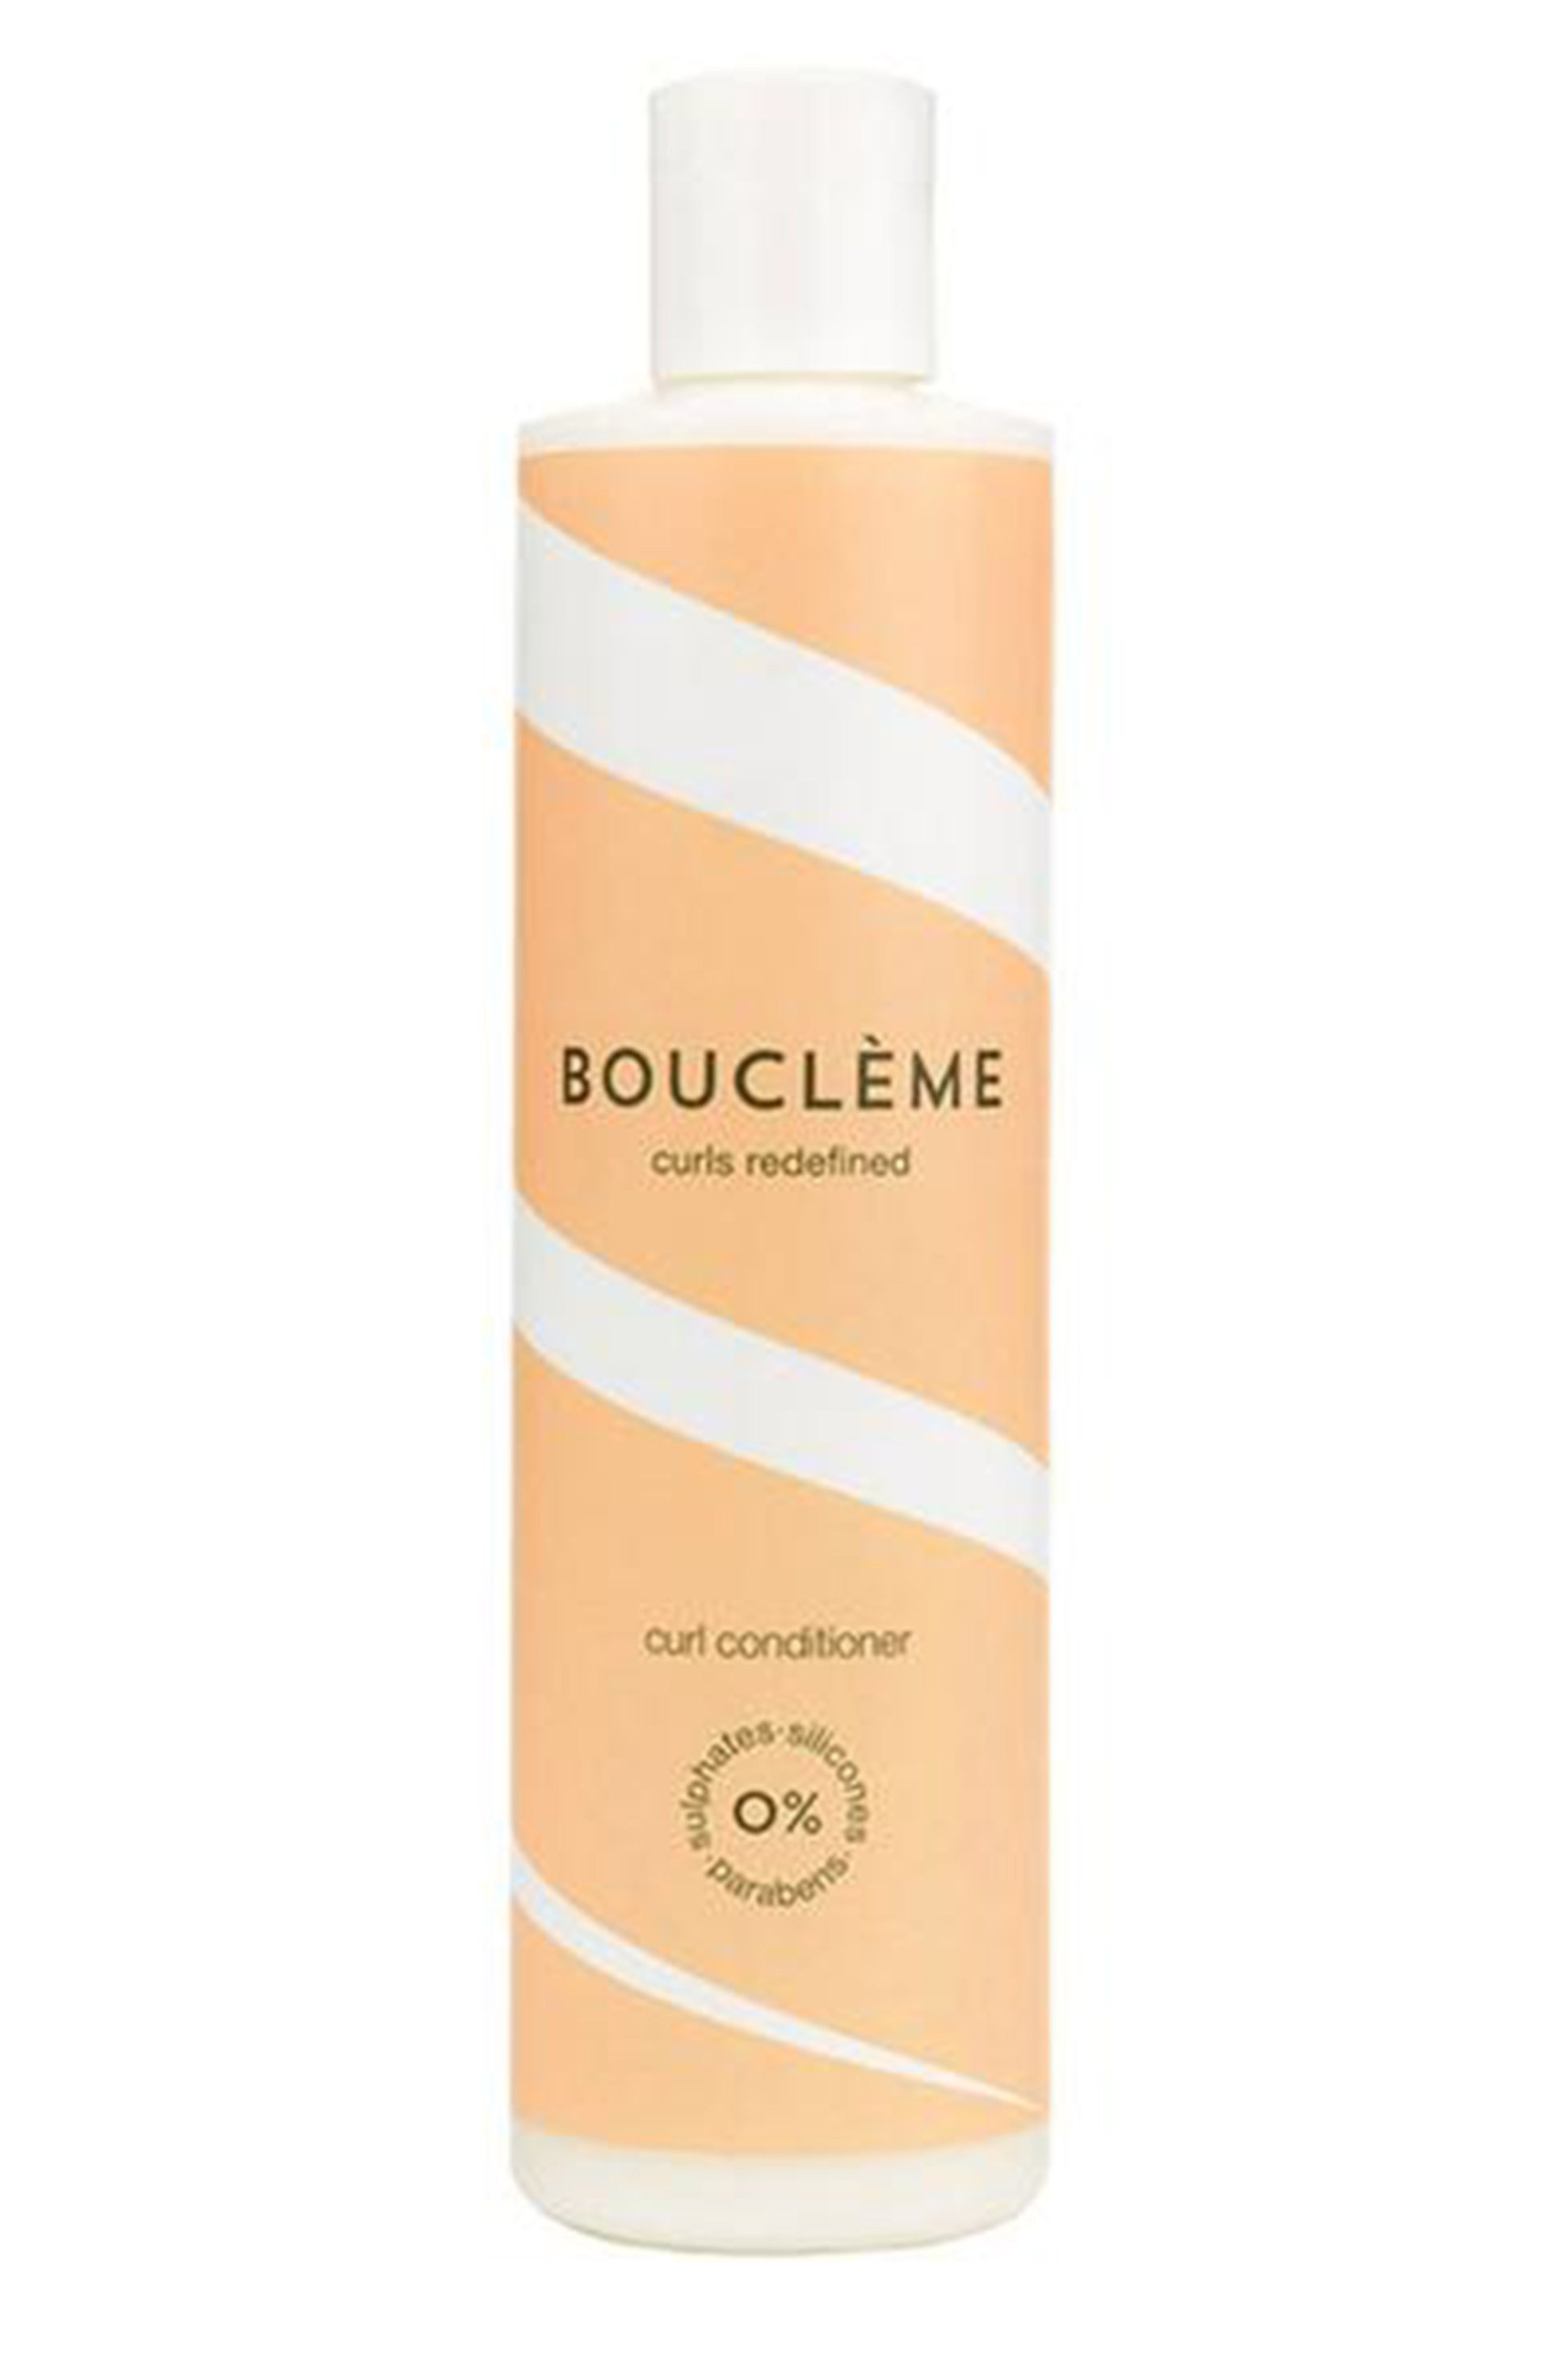 BOUCLEME Curls Redefined Curl Conditioner